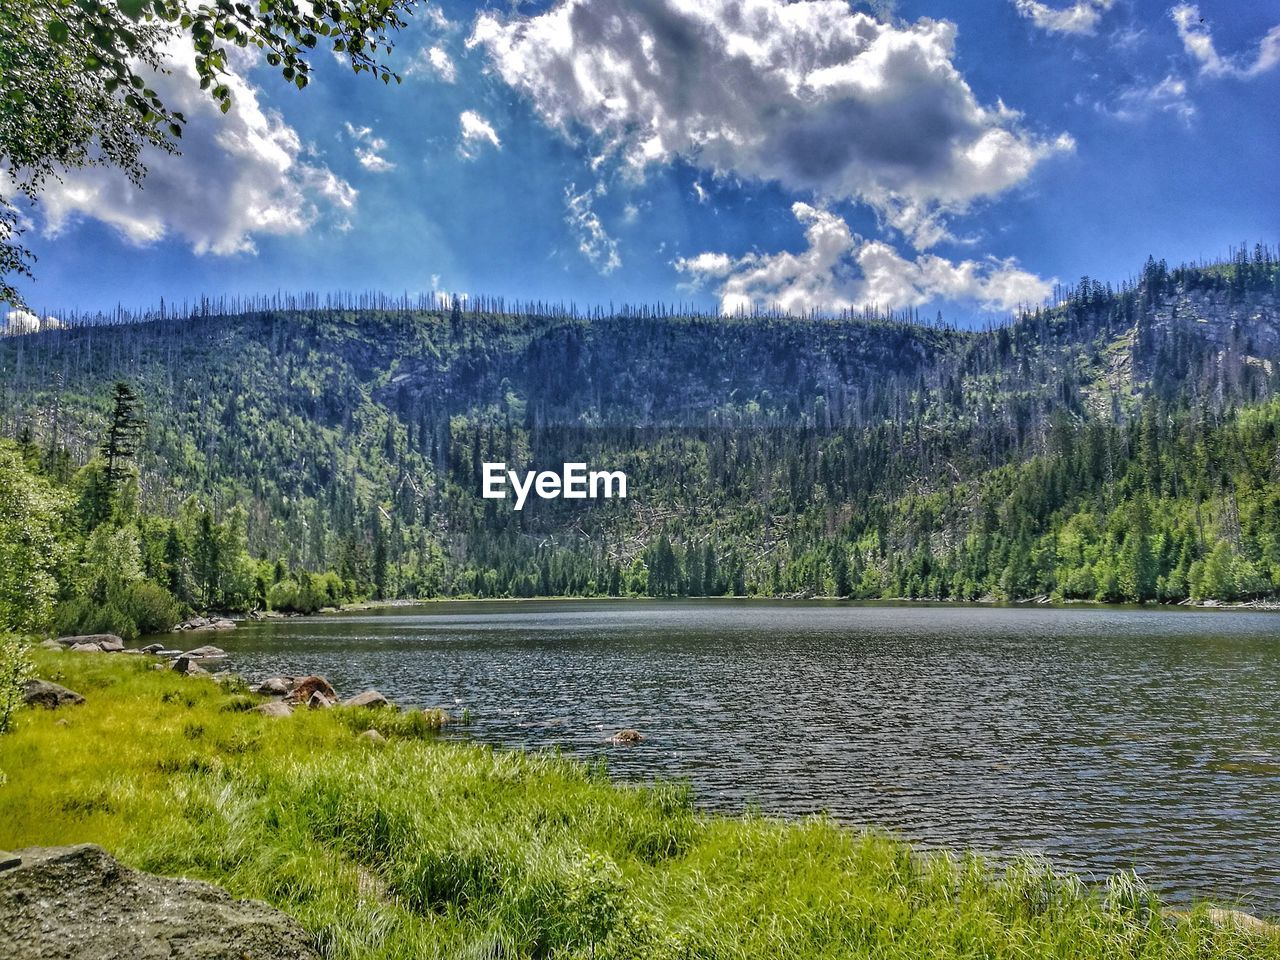 nature, tree, beauty in nature, scenics, sky, tranquility, tranquil scene, mountain, lake, cloud - sky, grass, no people, landscape, day, water, outdoors, growth, forest, mountain range, green color, plant, scenery, range